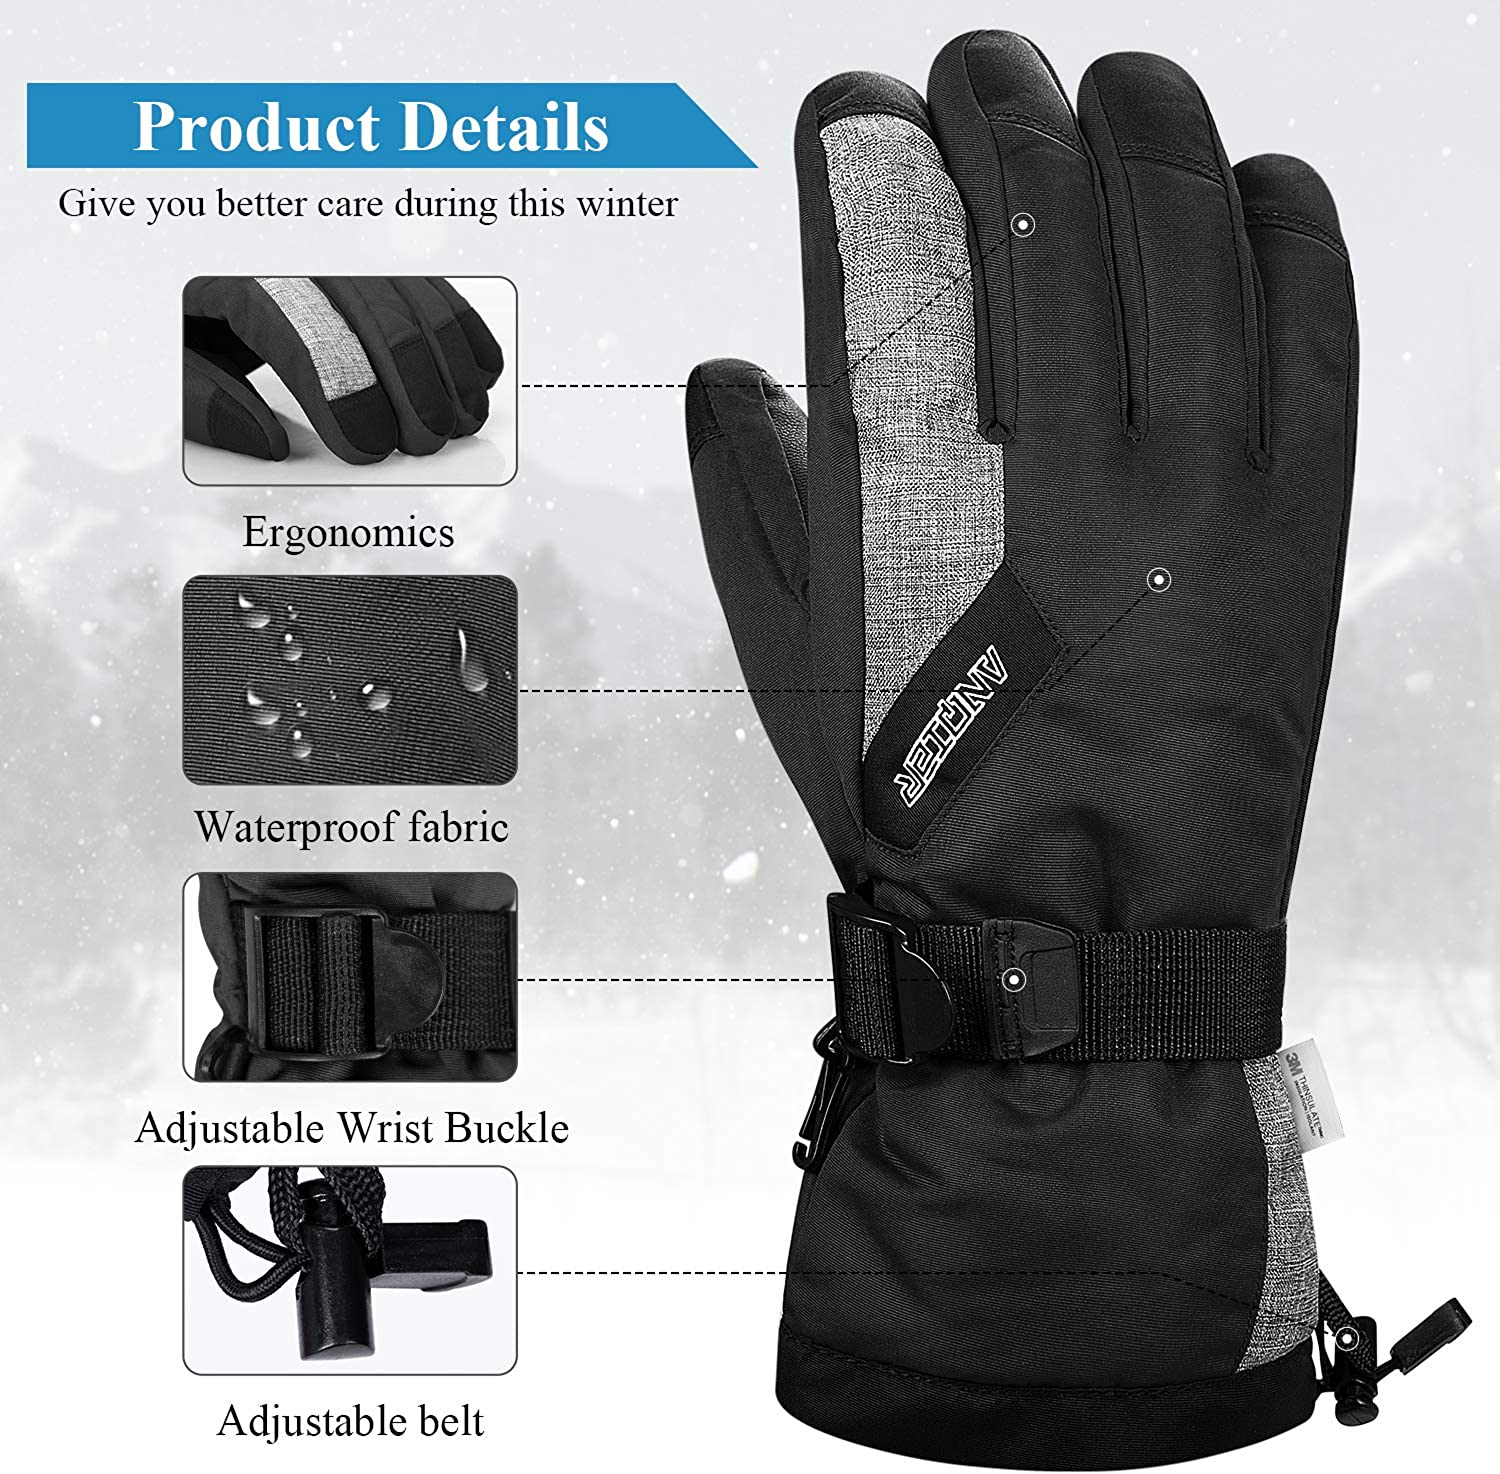 LANYI Winter Gloves for Men Women Thinsulate Waterproof Ski Thermal Gloves Snowboard Fleece Warm Snow Cold Weather Gloves